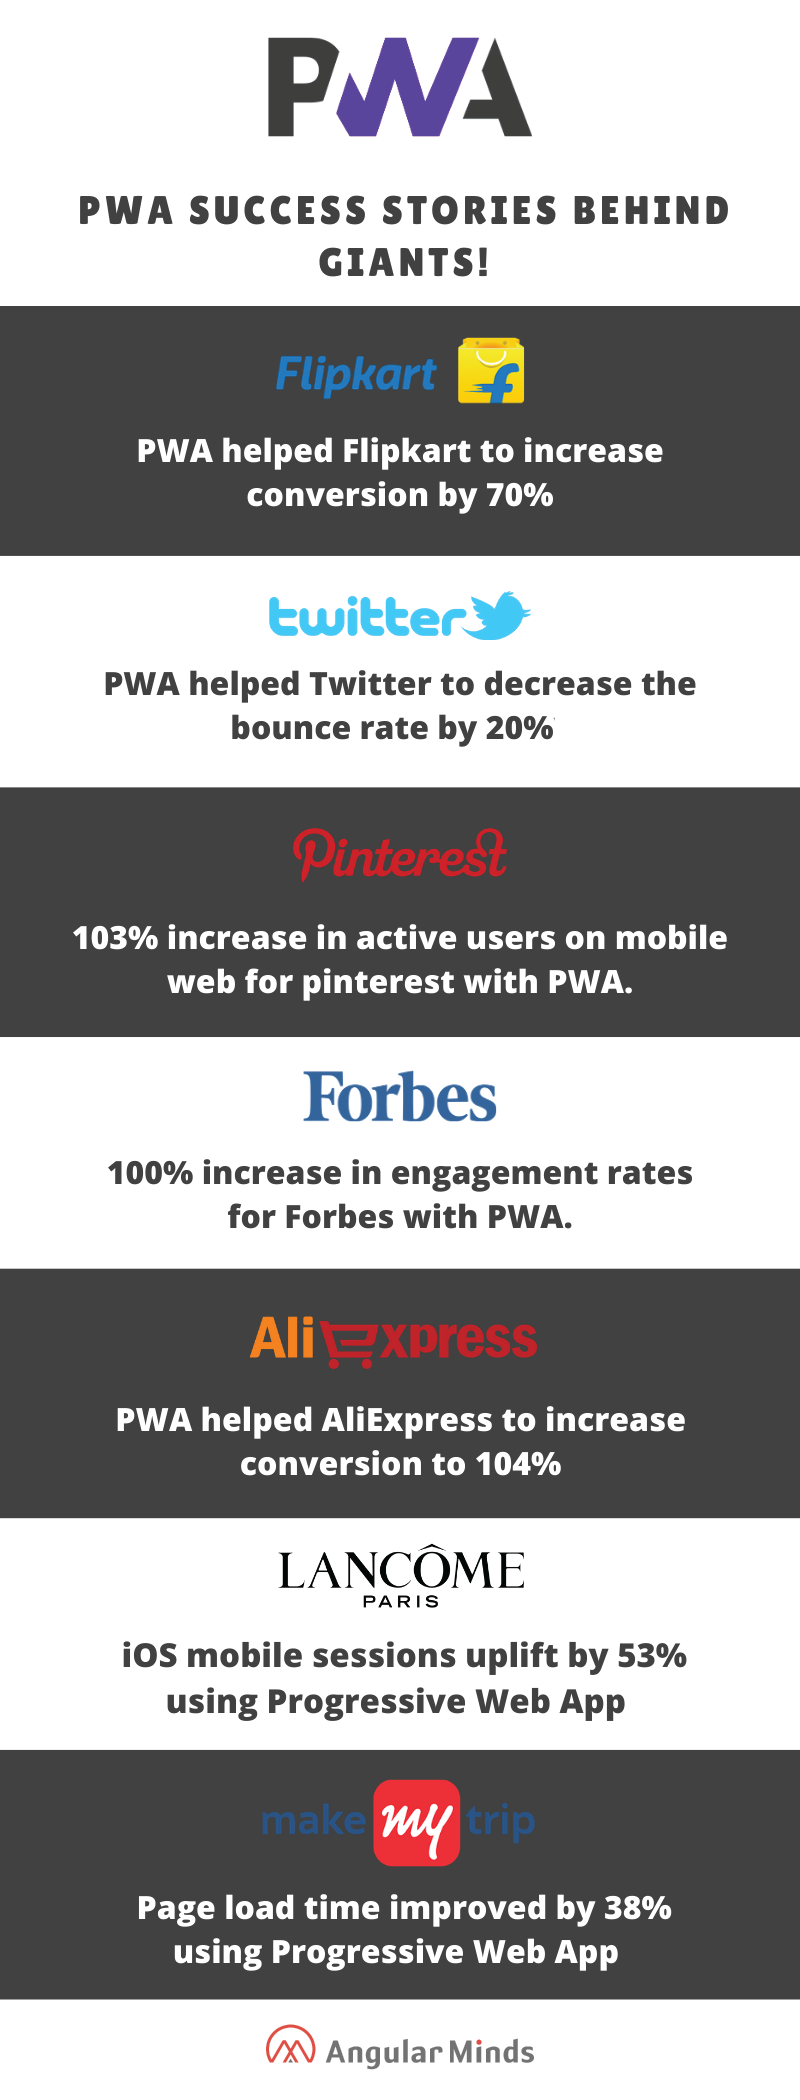 how pwa improved revenuw for these companies